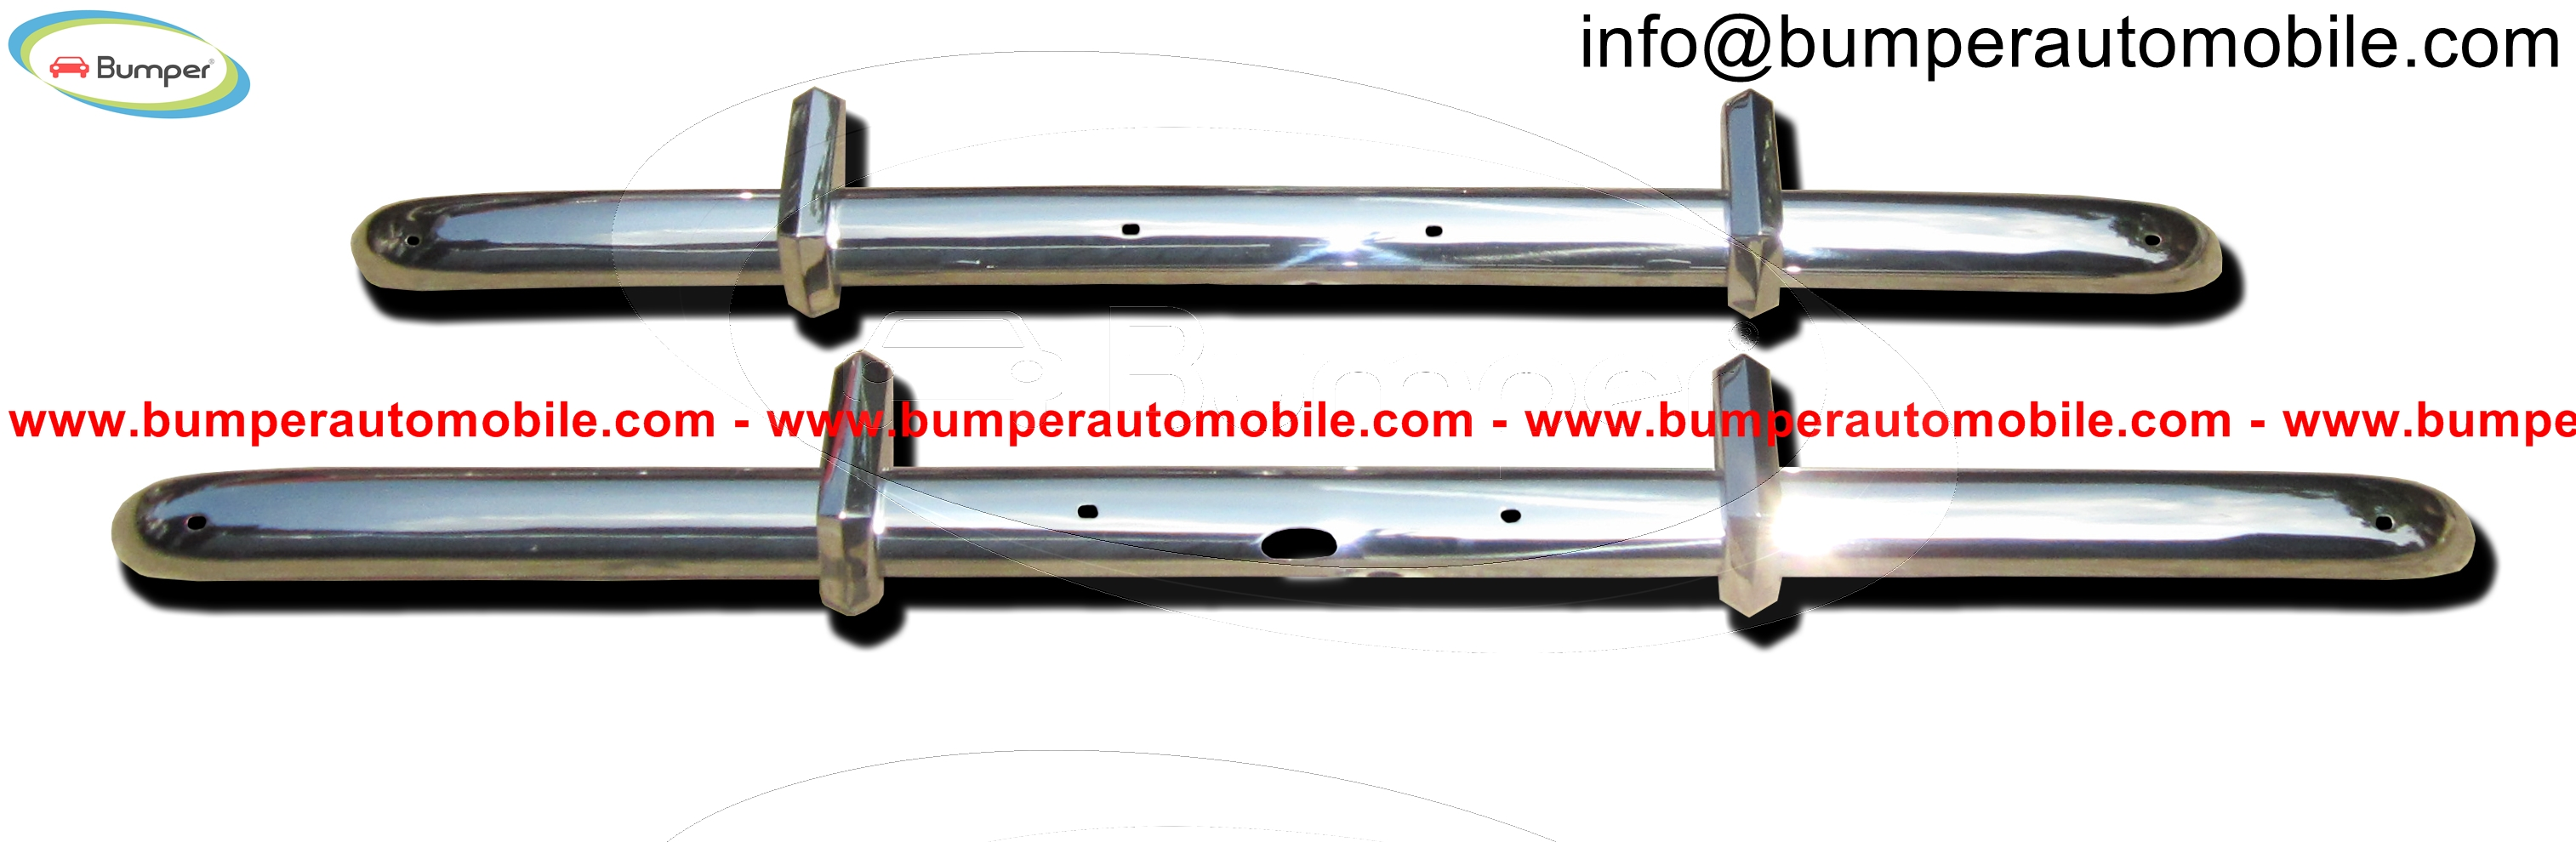 Bristol 400 bumpers ( 1947-1950) polished stainless steel